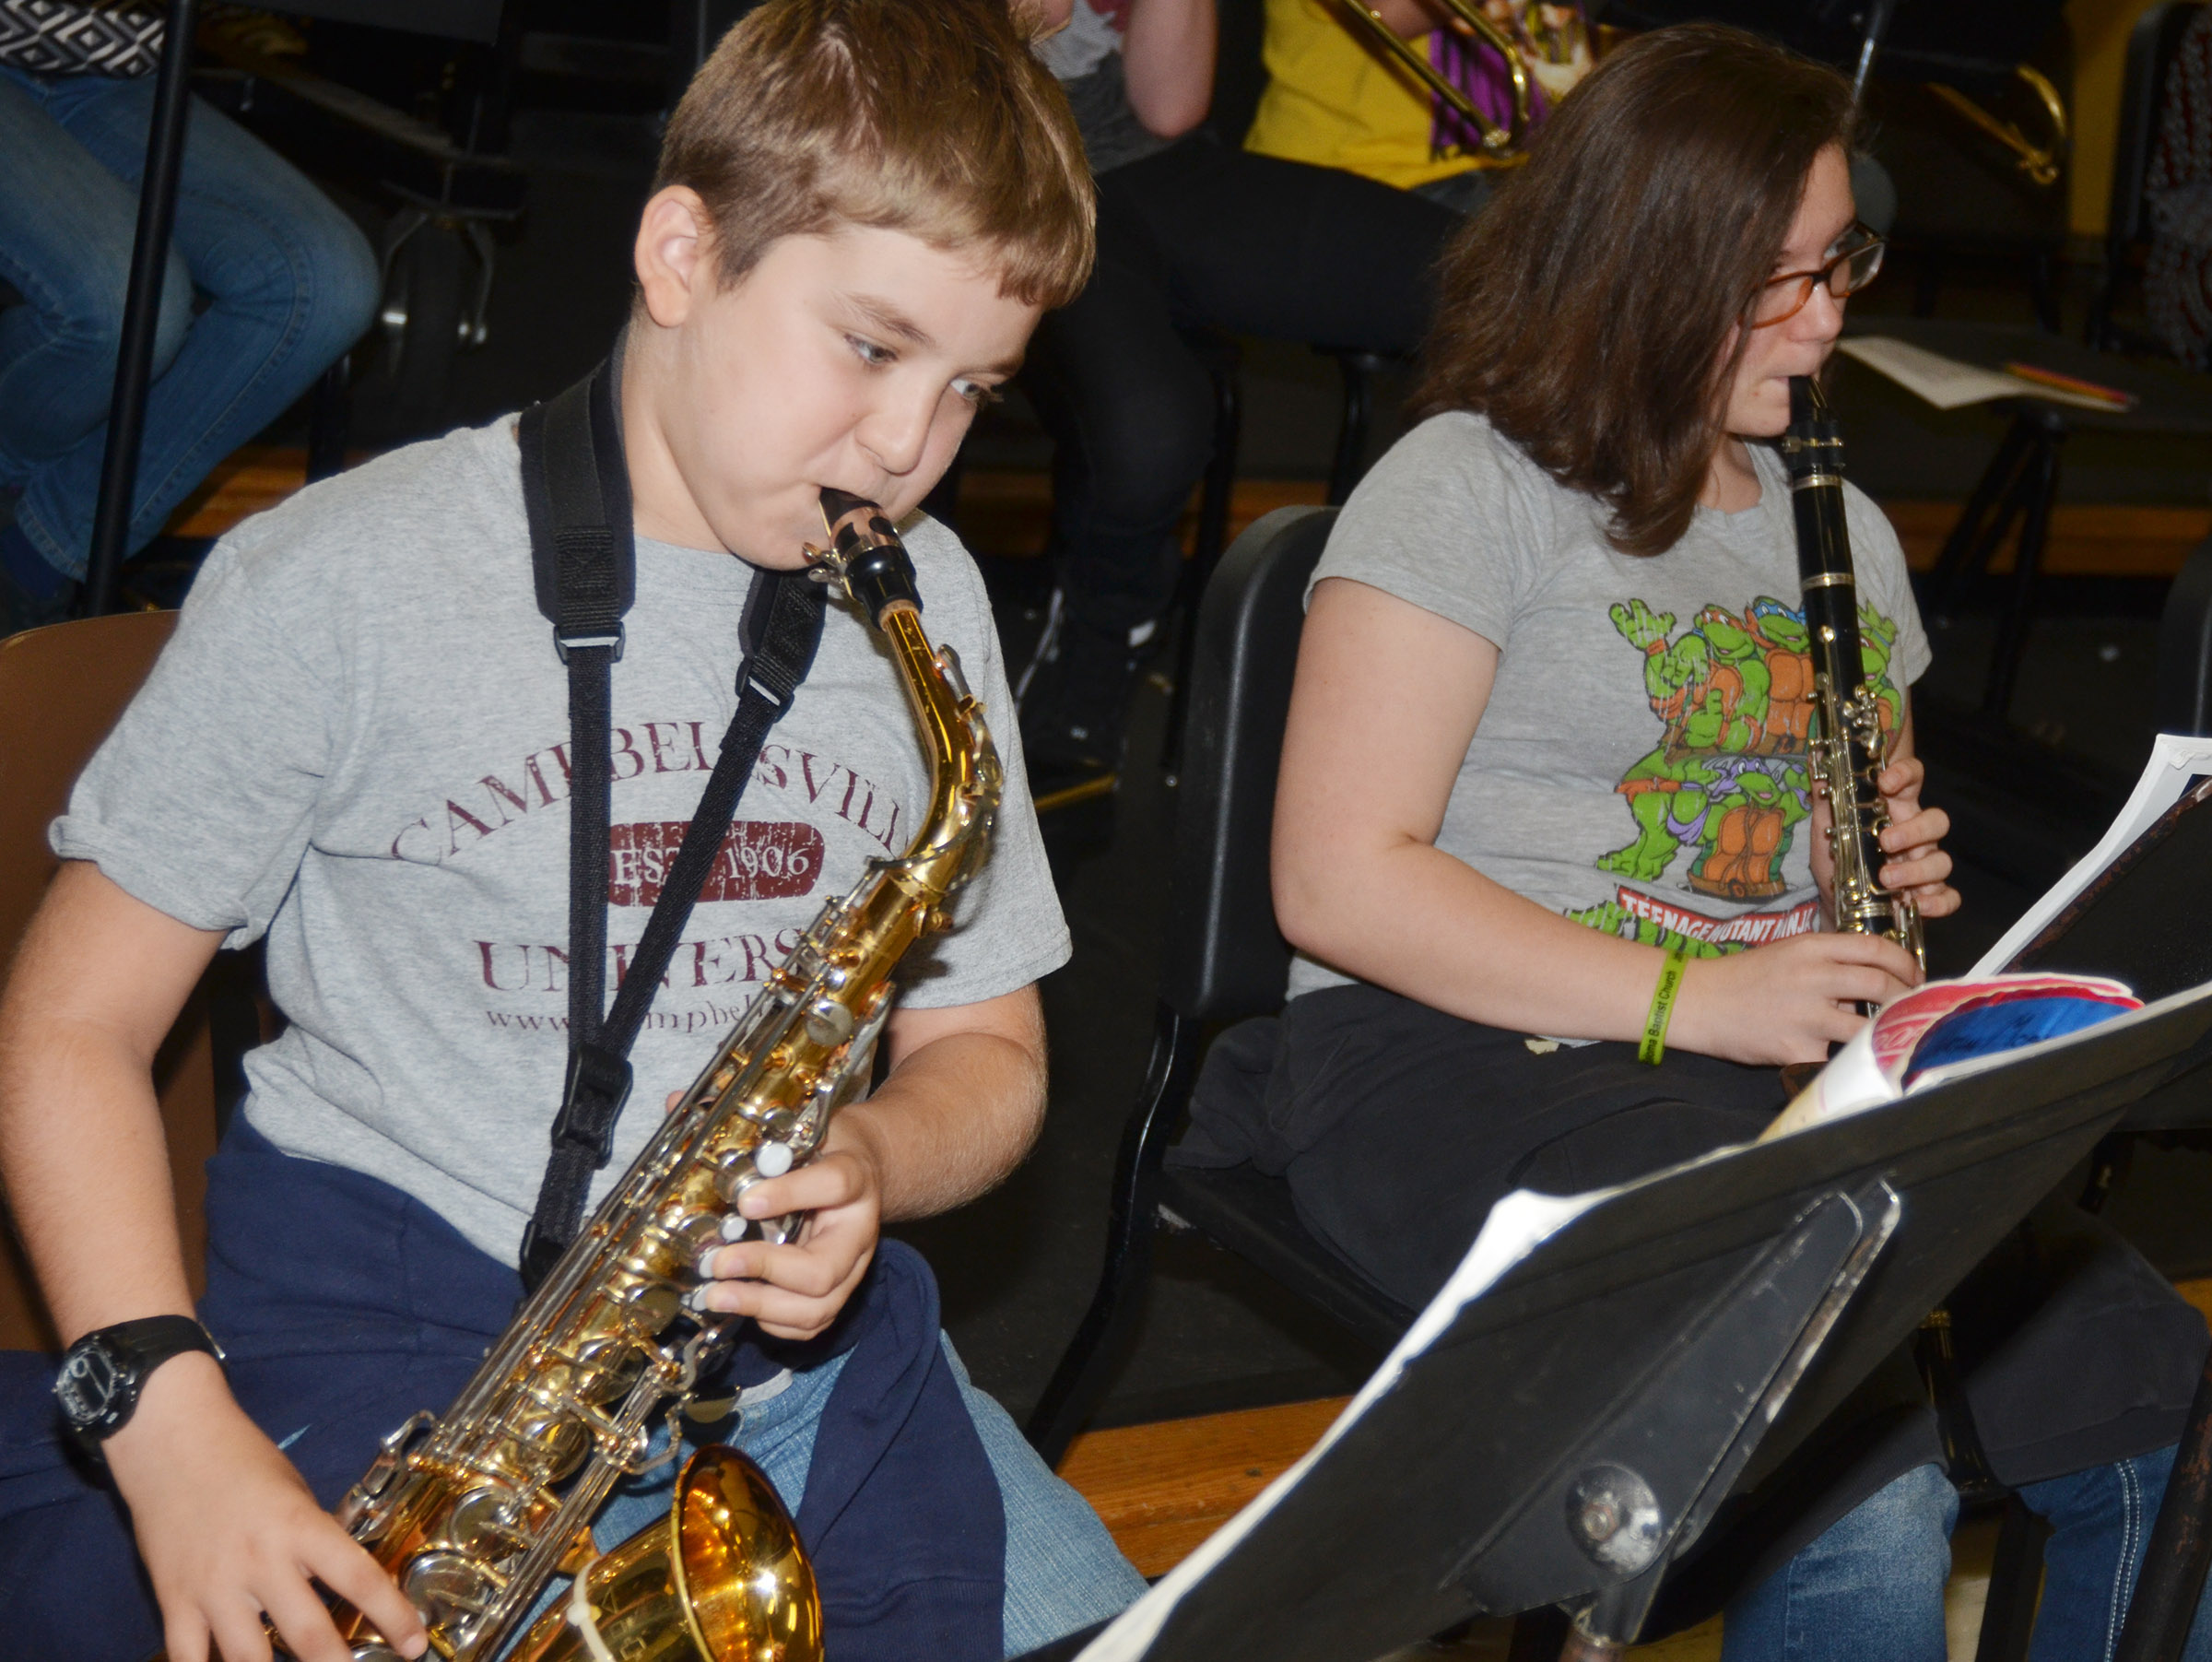 CMS sixth-grader Nathan McFarland, at left, plays saxophone while eighth-grader Serenity Tungate plays clarinet.